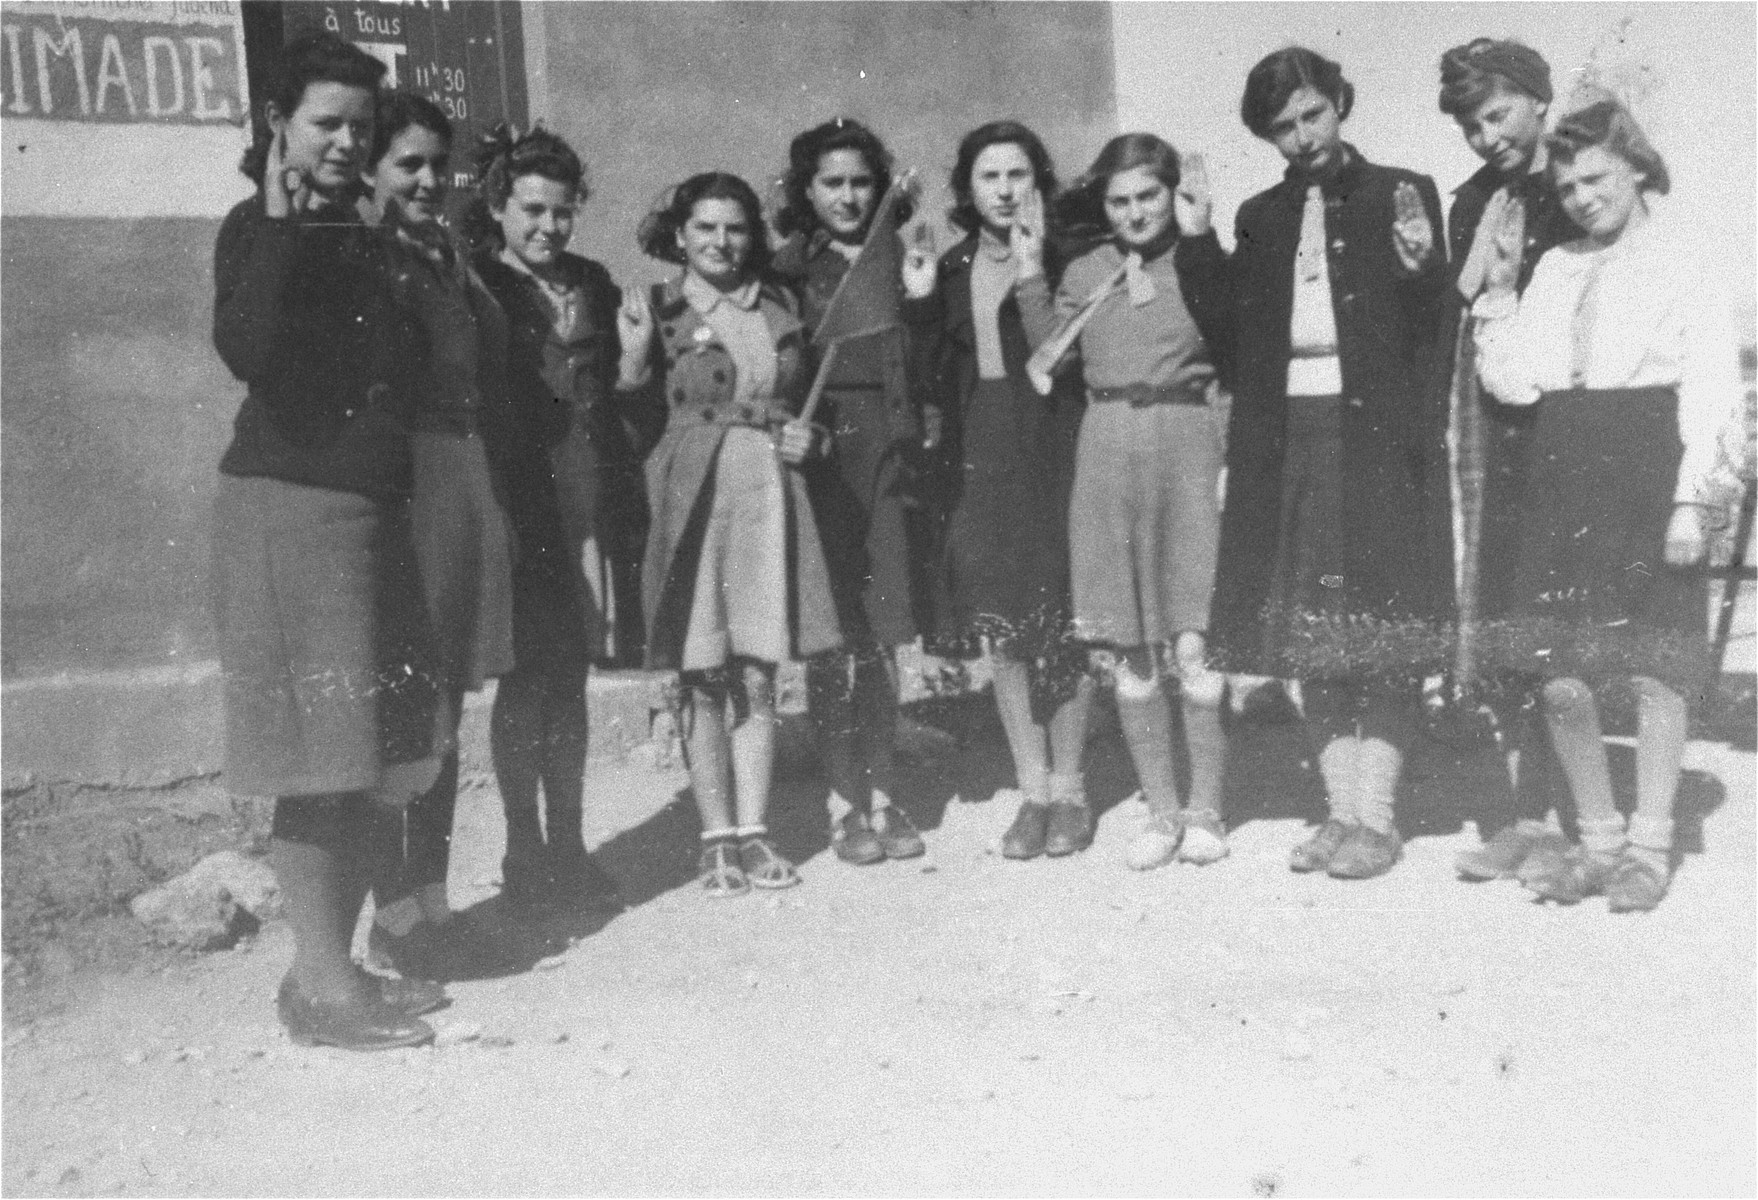 A girl scout troop organized by Simone Weil in the Rivesaltes transit camp.